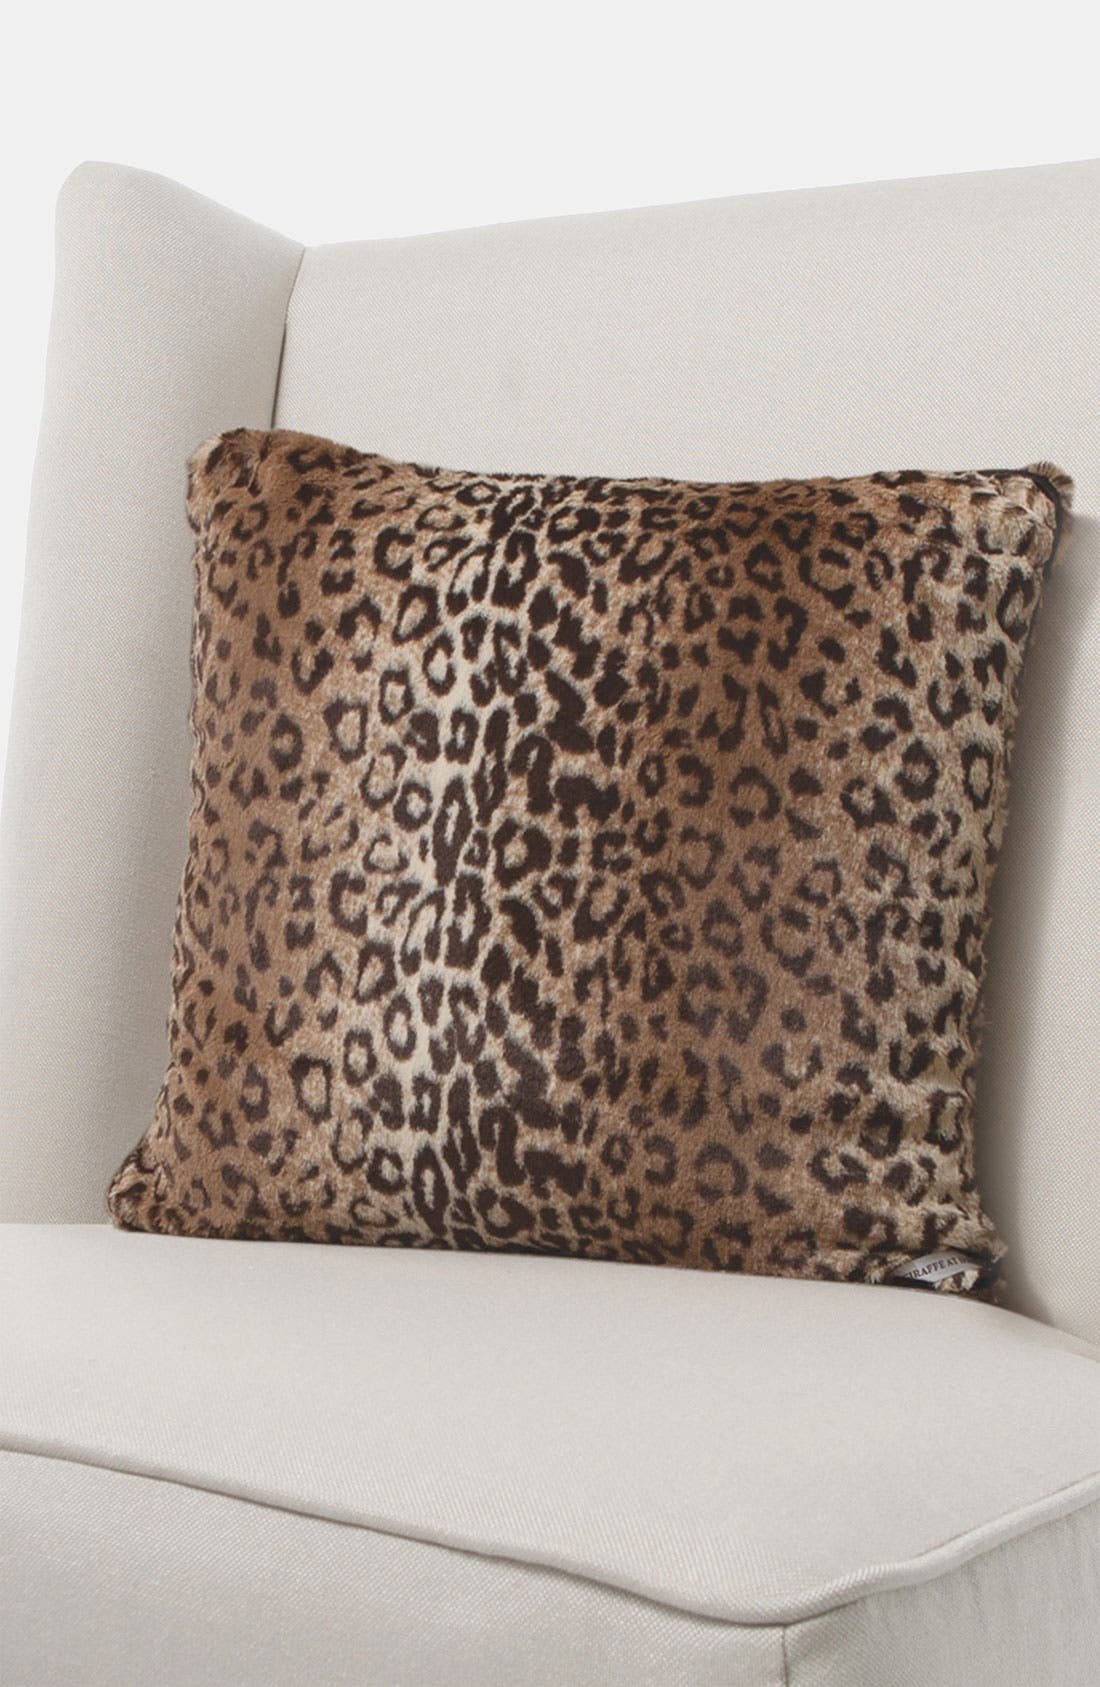 'Luxe Leopard' Throw Pillow,                             Main thumbnail 1, color,                             200